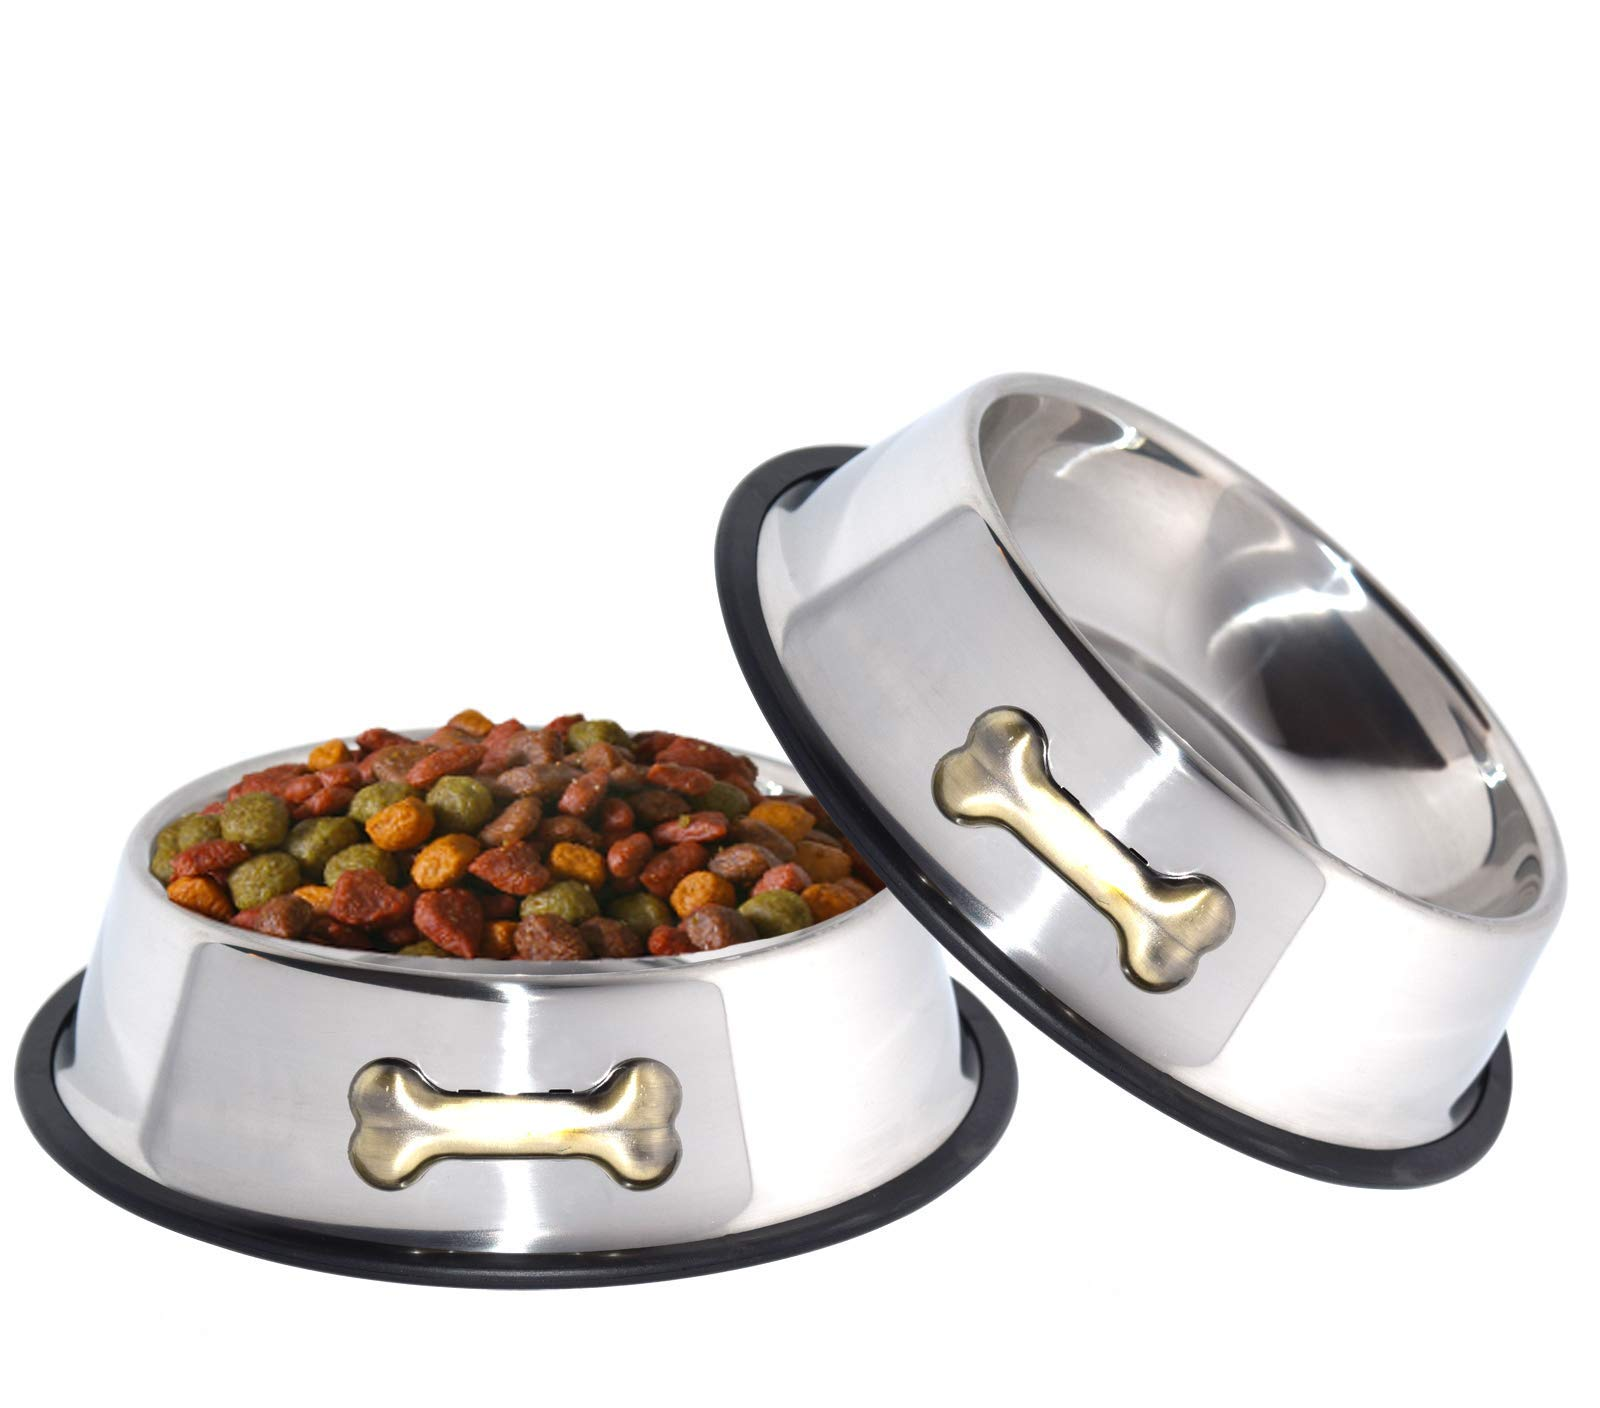 GPET Dog Bowl 32 Oz Stainless Steel Bowls with Anti-Skid Rubber Base for Food or Water Perfect Dish for Dog Puppy Cat and Kitten (2 Pack) by GPET